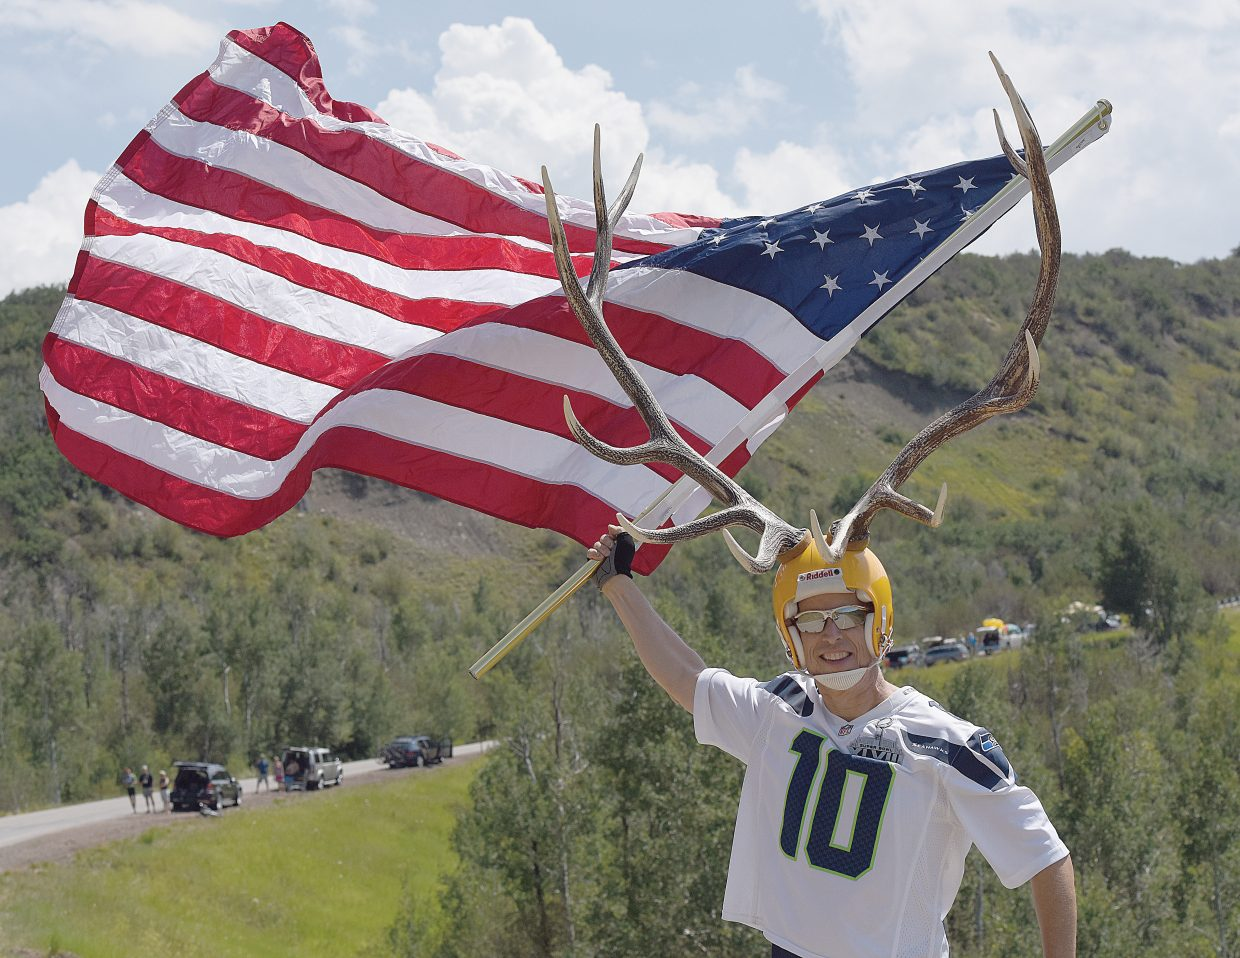 One of the more enthusiastic fans waits for approaching riders near the King of the Mountain finish on Routt County Road 27 between Steamboat Springs and Oak Creek Monday afternoon.